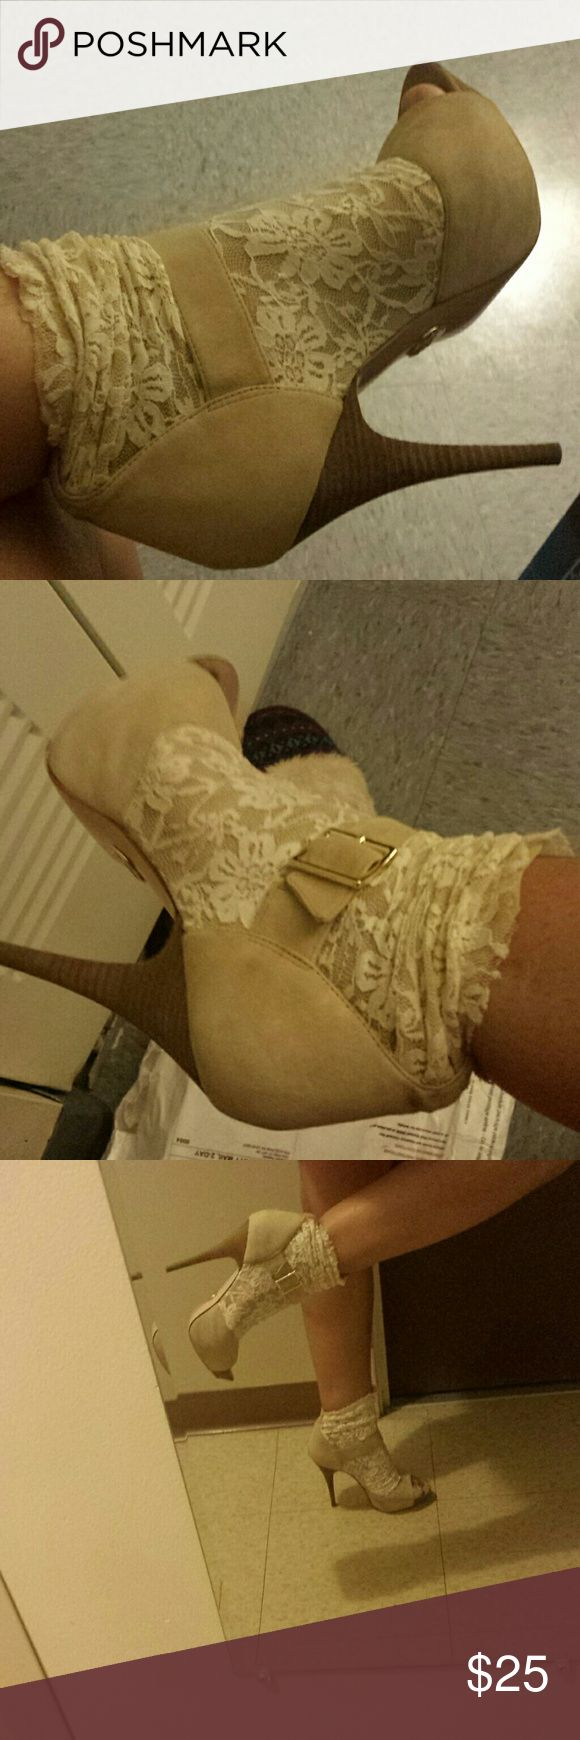 Hello I am selling a pair of cream high heel Cream high heels with ankle socks connected together very funky it's made by Betsey Johnson Betsey Johnson Shoes Ankle Boots & Booties